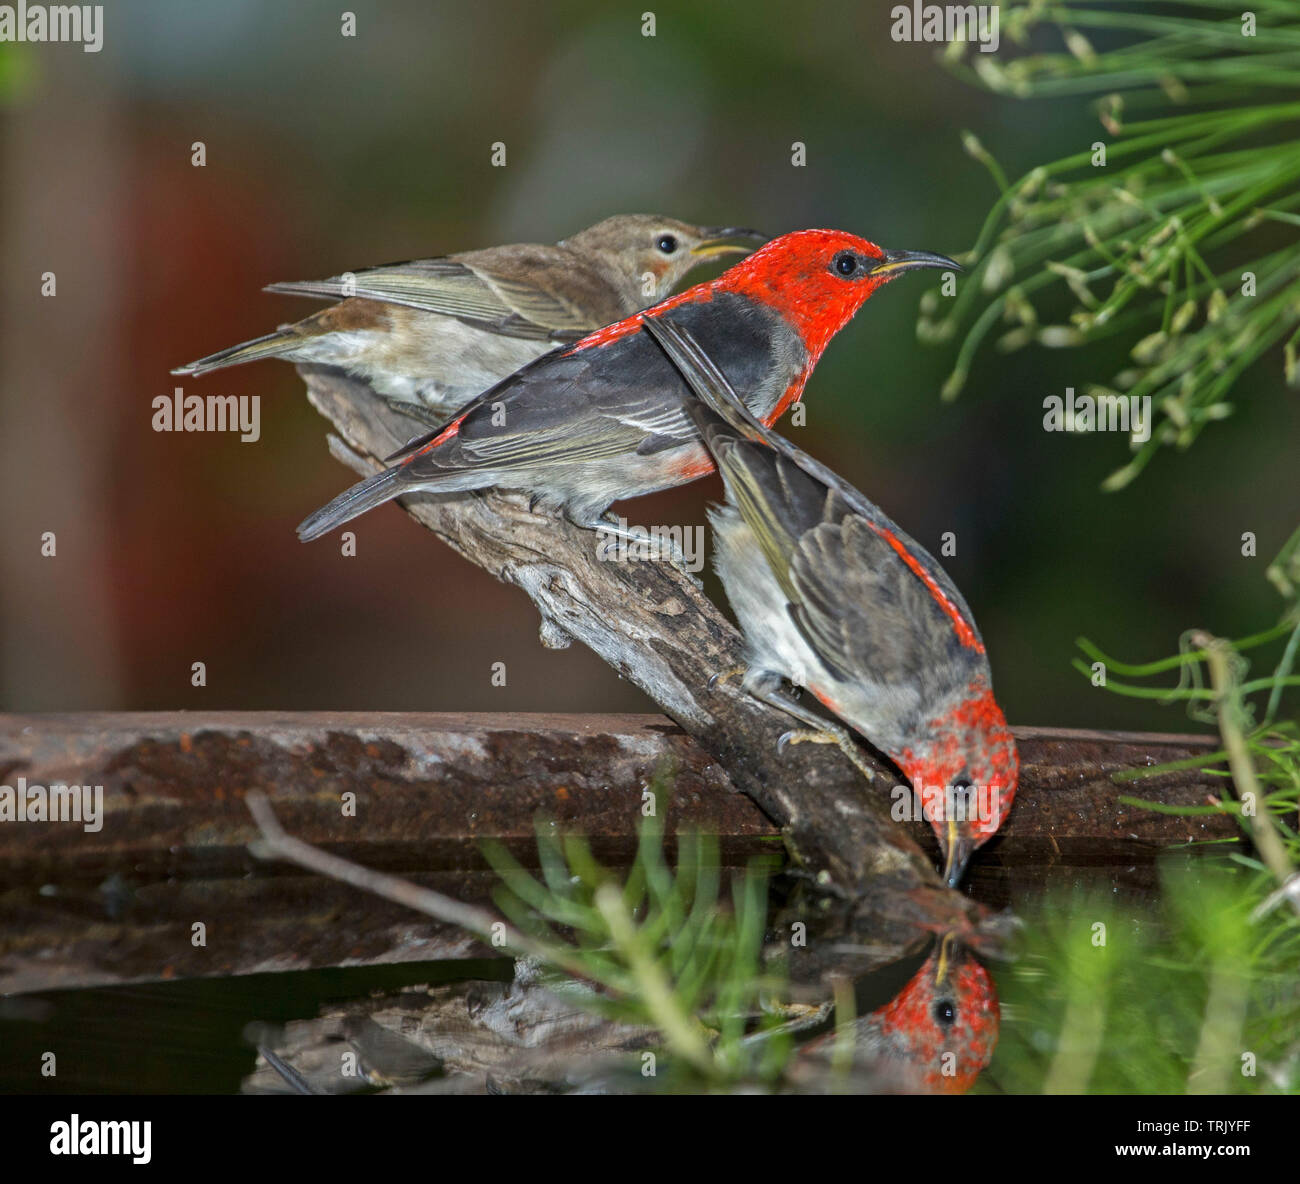 Family of spectacular Australian Scarlet Honeyeaters, Myzomela sanguinolenta, at garden bird bath, with one drinking and reflected in water - Stock Image